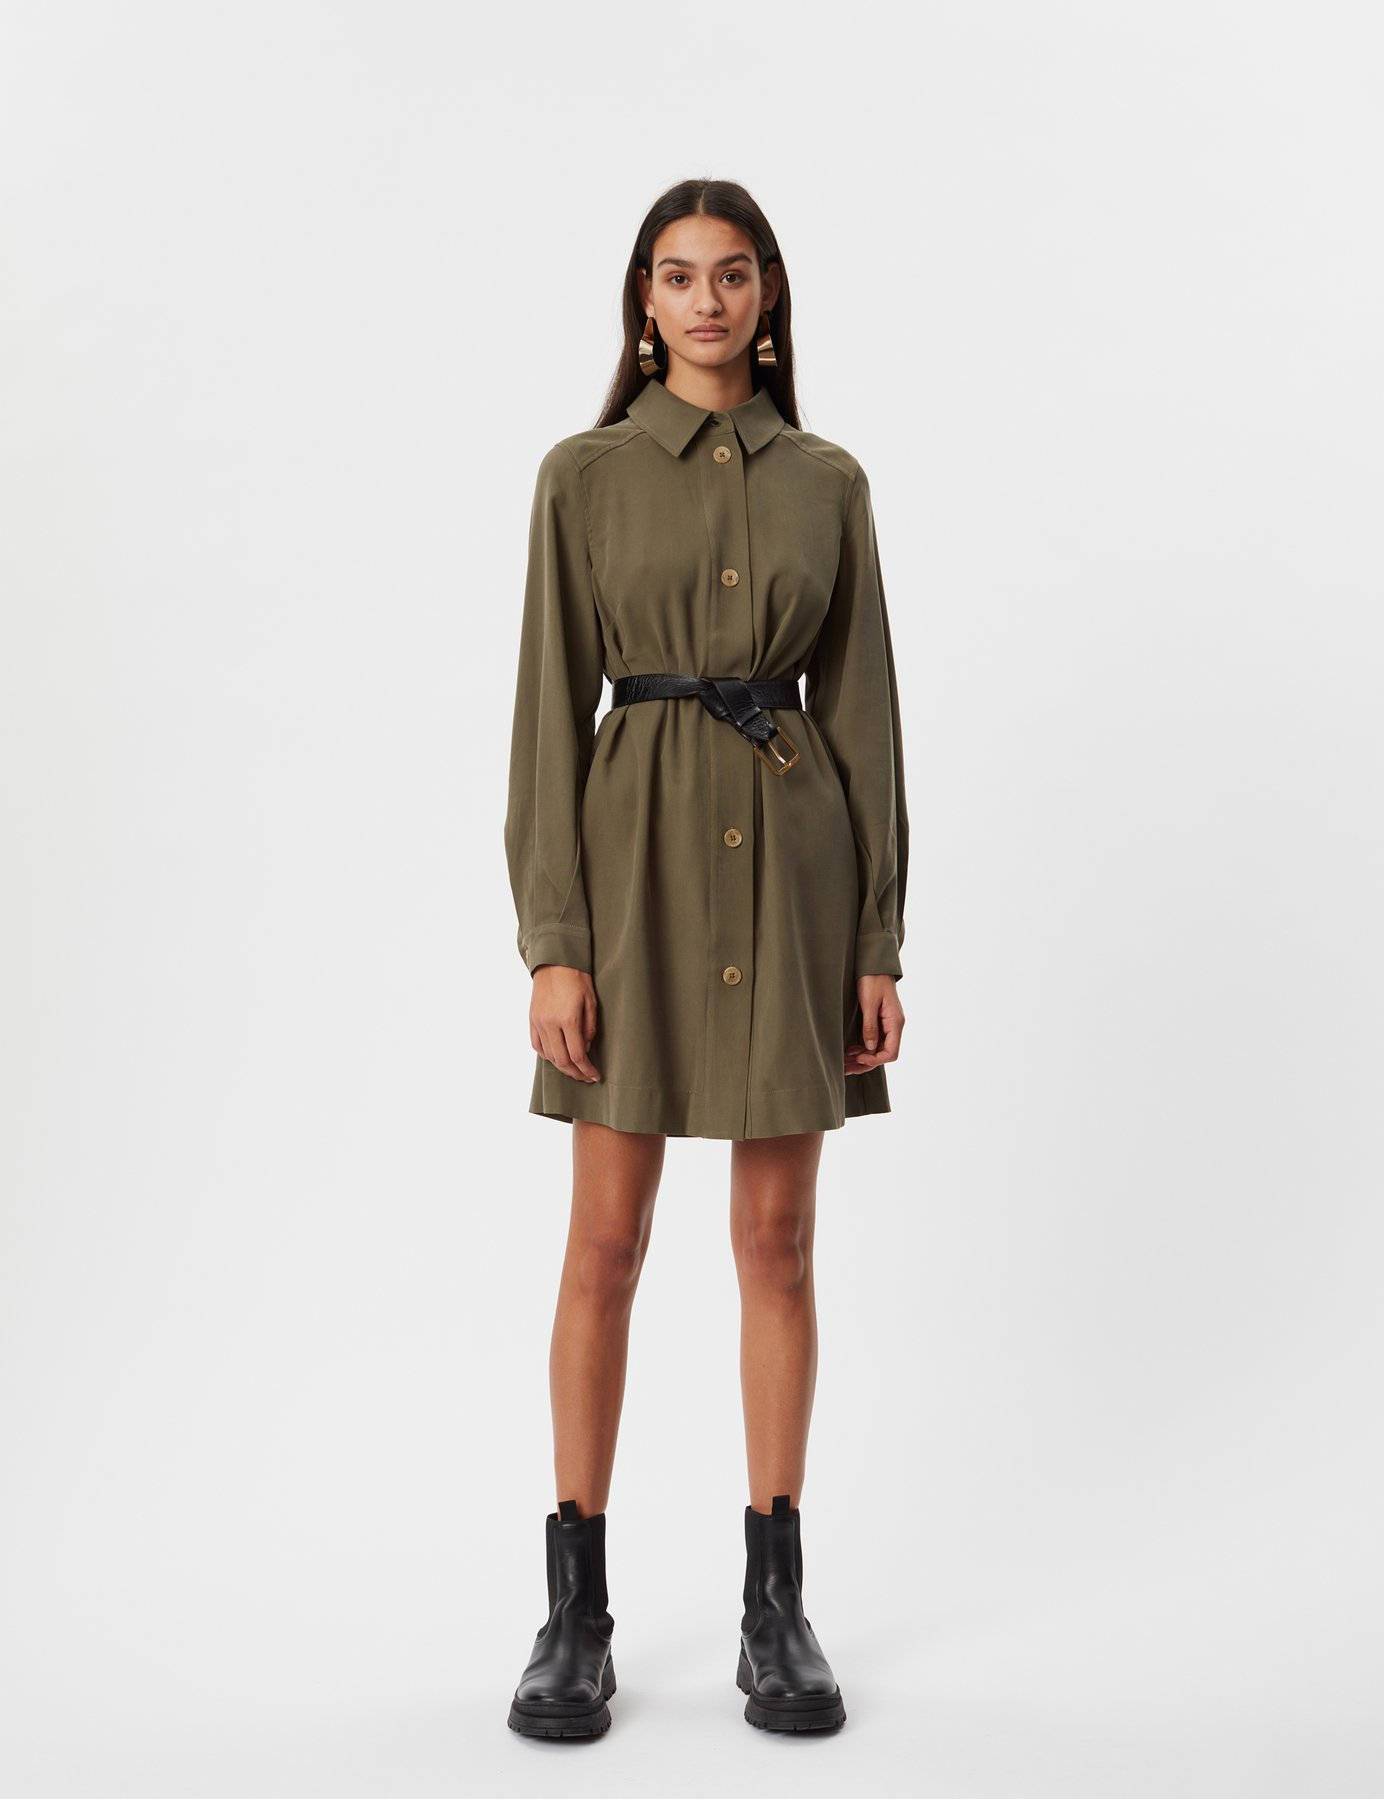 DAY_20Give_20You_20Dress-Dress-1212130005-05049_20Deep_20Olive_1384x1800